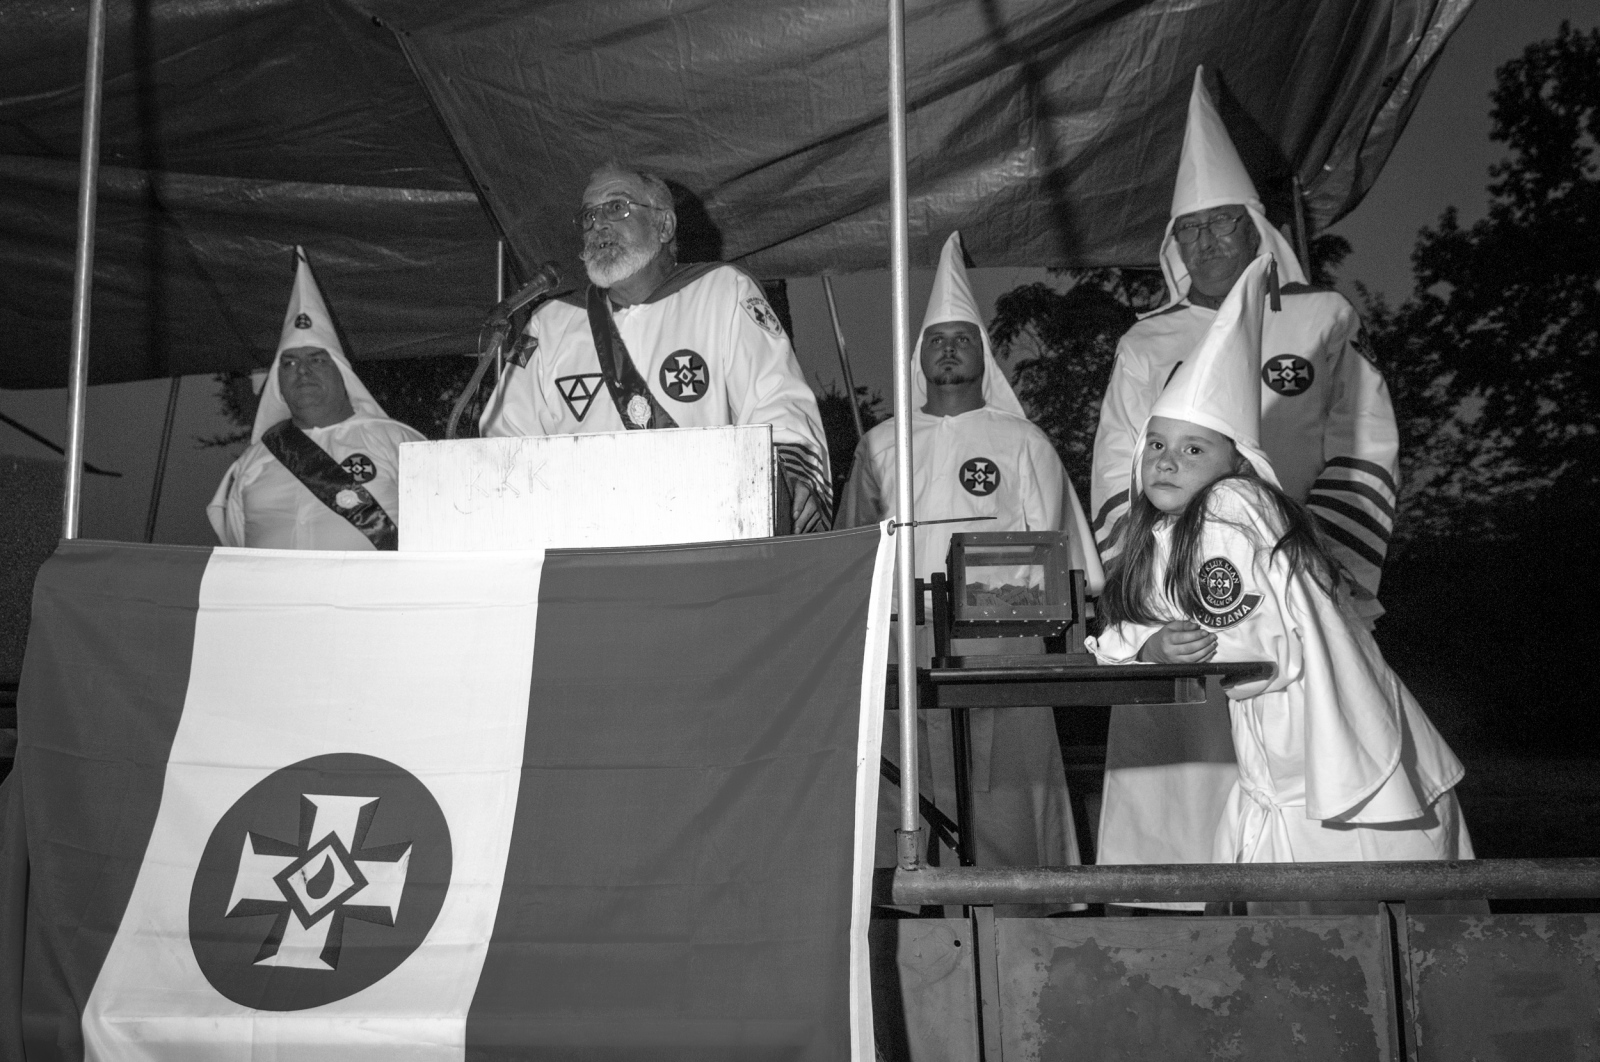 Arkansas.Members and supporting Klan realms from five different states came together for a two-day weekend of racial unity. The gathering included BBQ's, a raffle (shown here), fellowship, an award ceremony and a Klan naturalization. A historical cannon was fired every hour on the hour during daylight hours, until local neighbors complained. Saturday evening closed with a cross lighting ceremony which, according to Klan ideology, dispels darkness and ignorance. Due to a statewide burn ban; the lighting was carried out with Christmas tree lights.